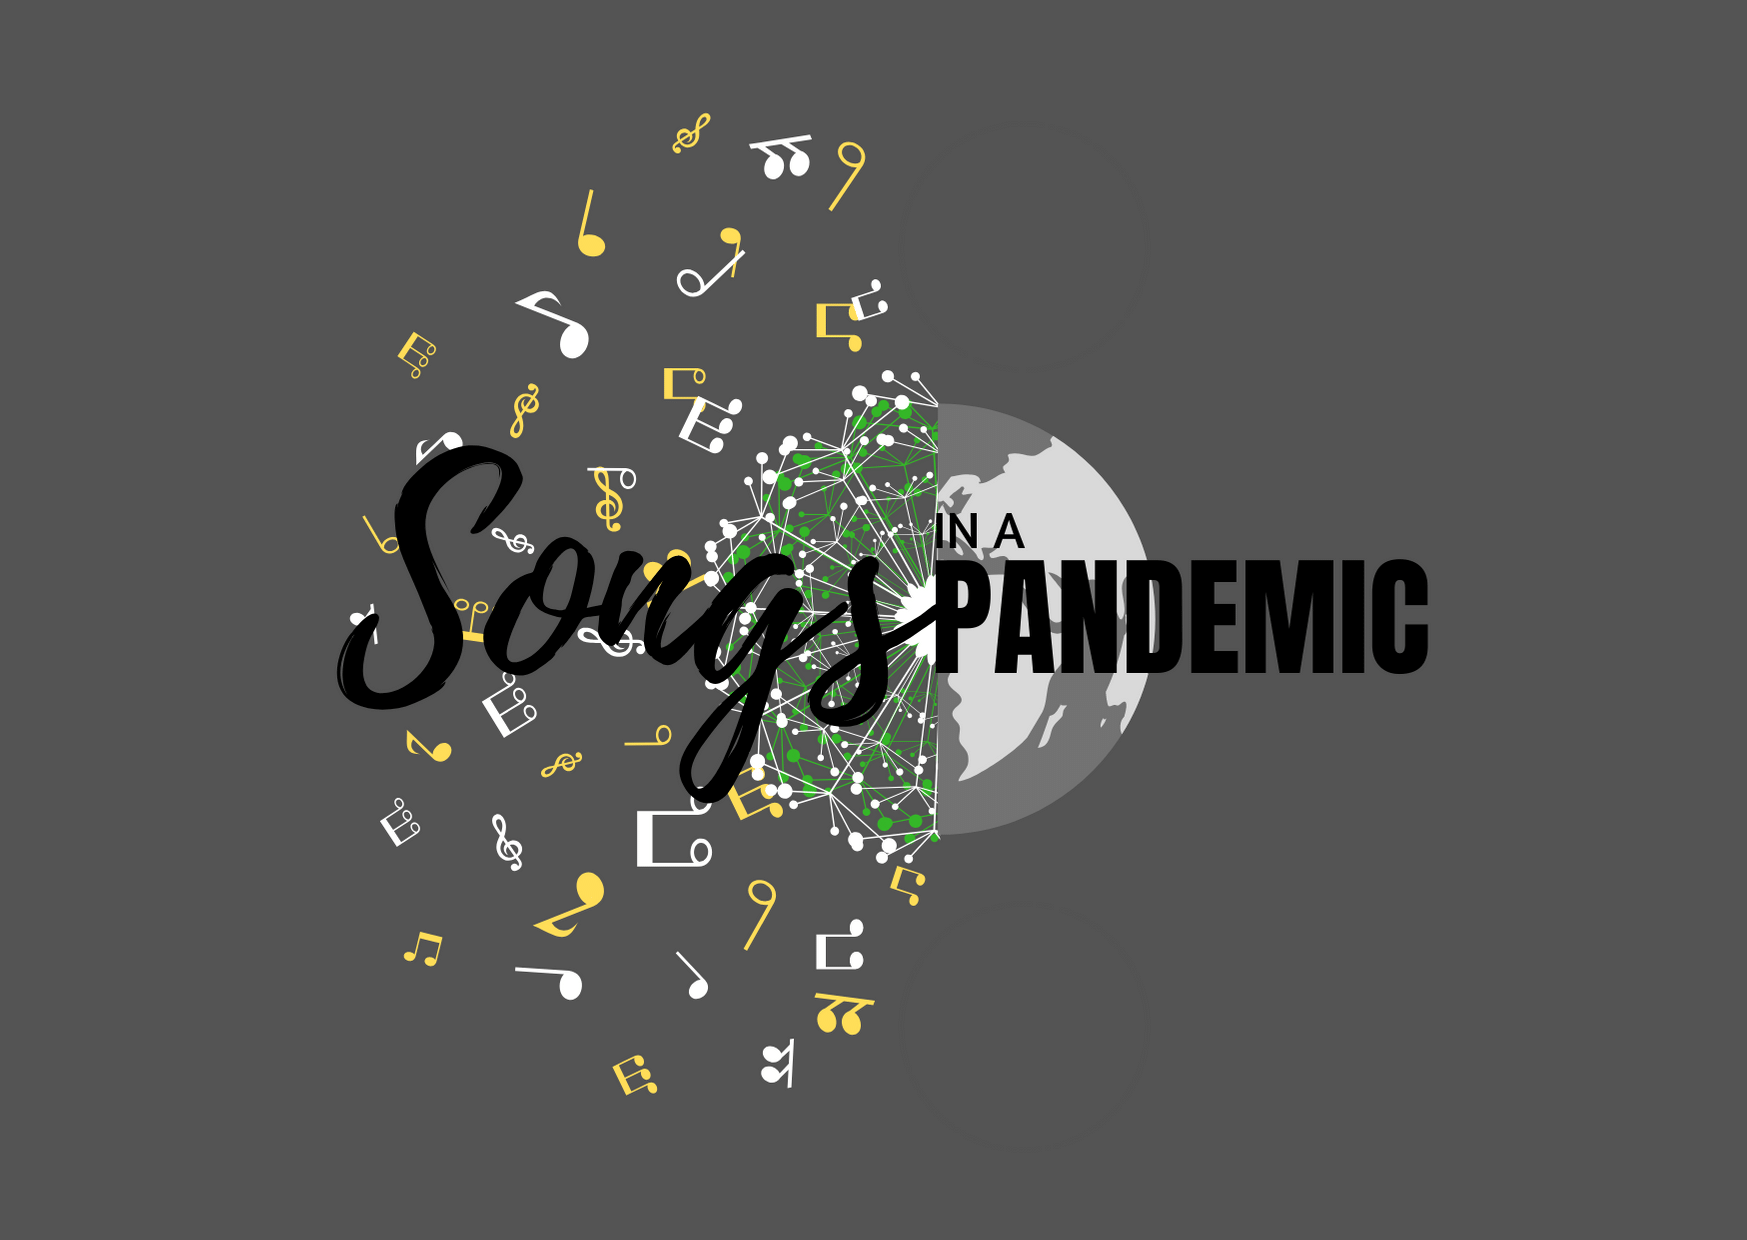 Songs in a Pandemic - Part 2, Ancient of Days